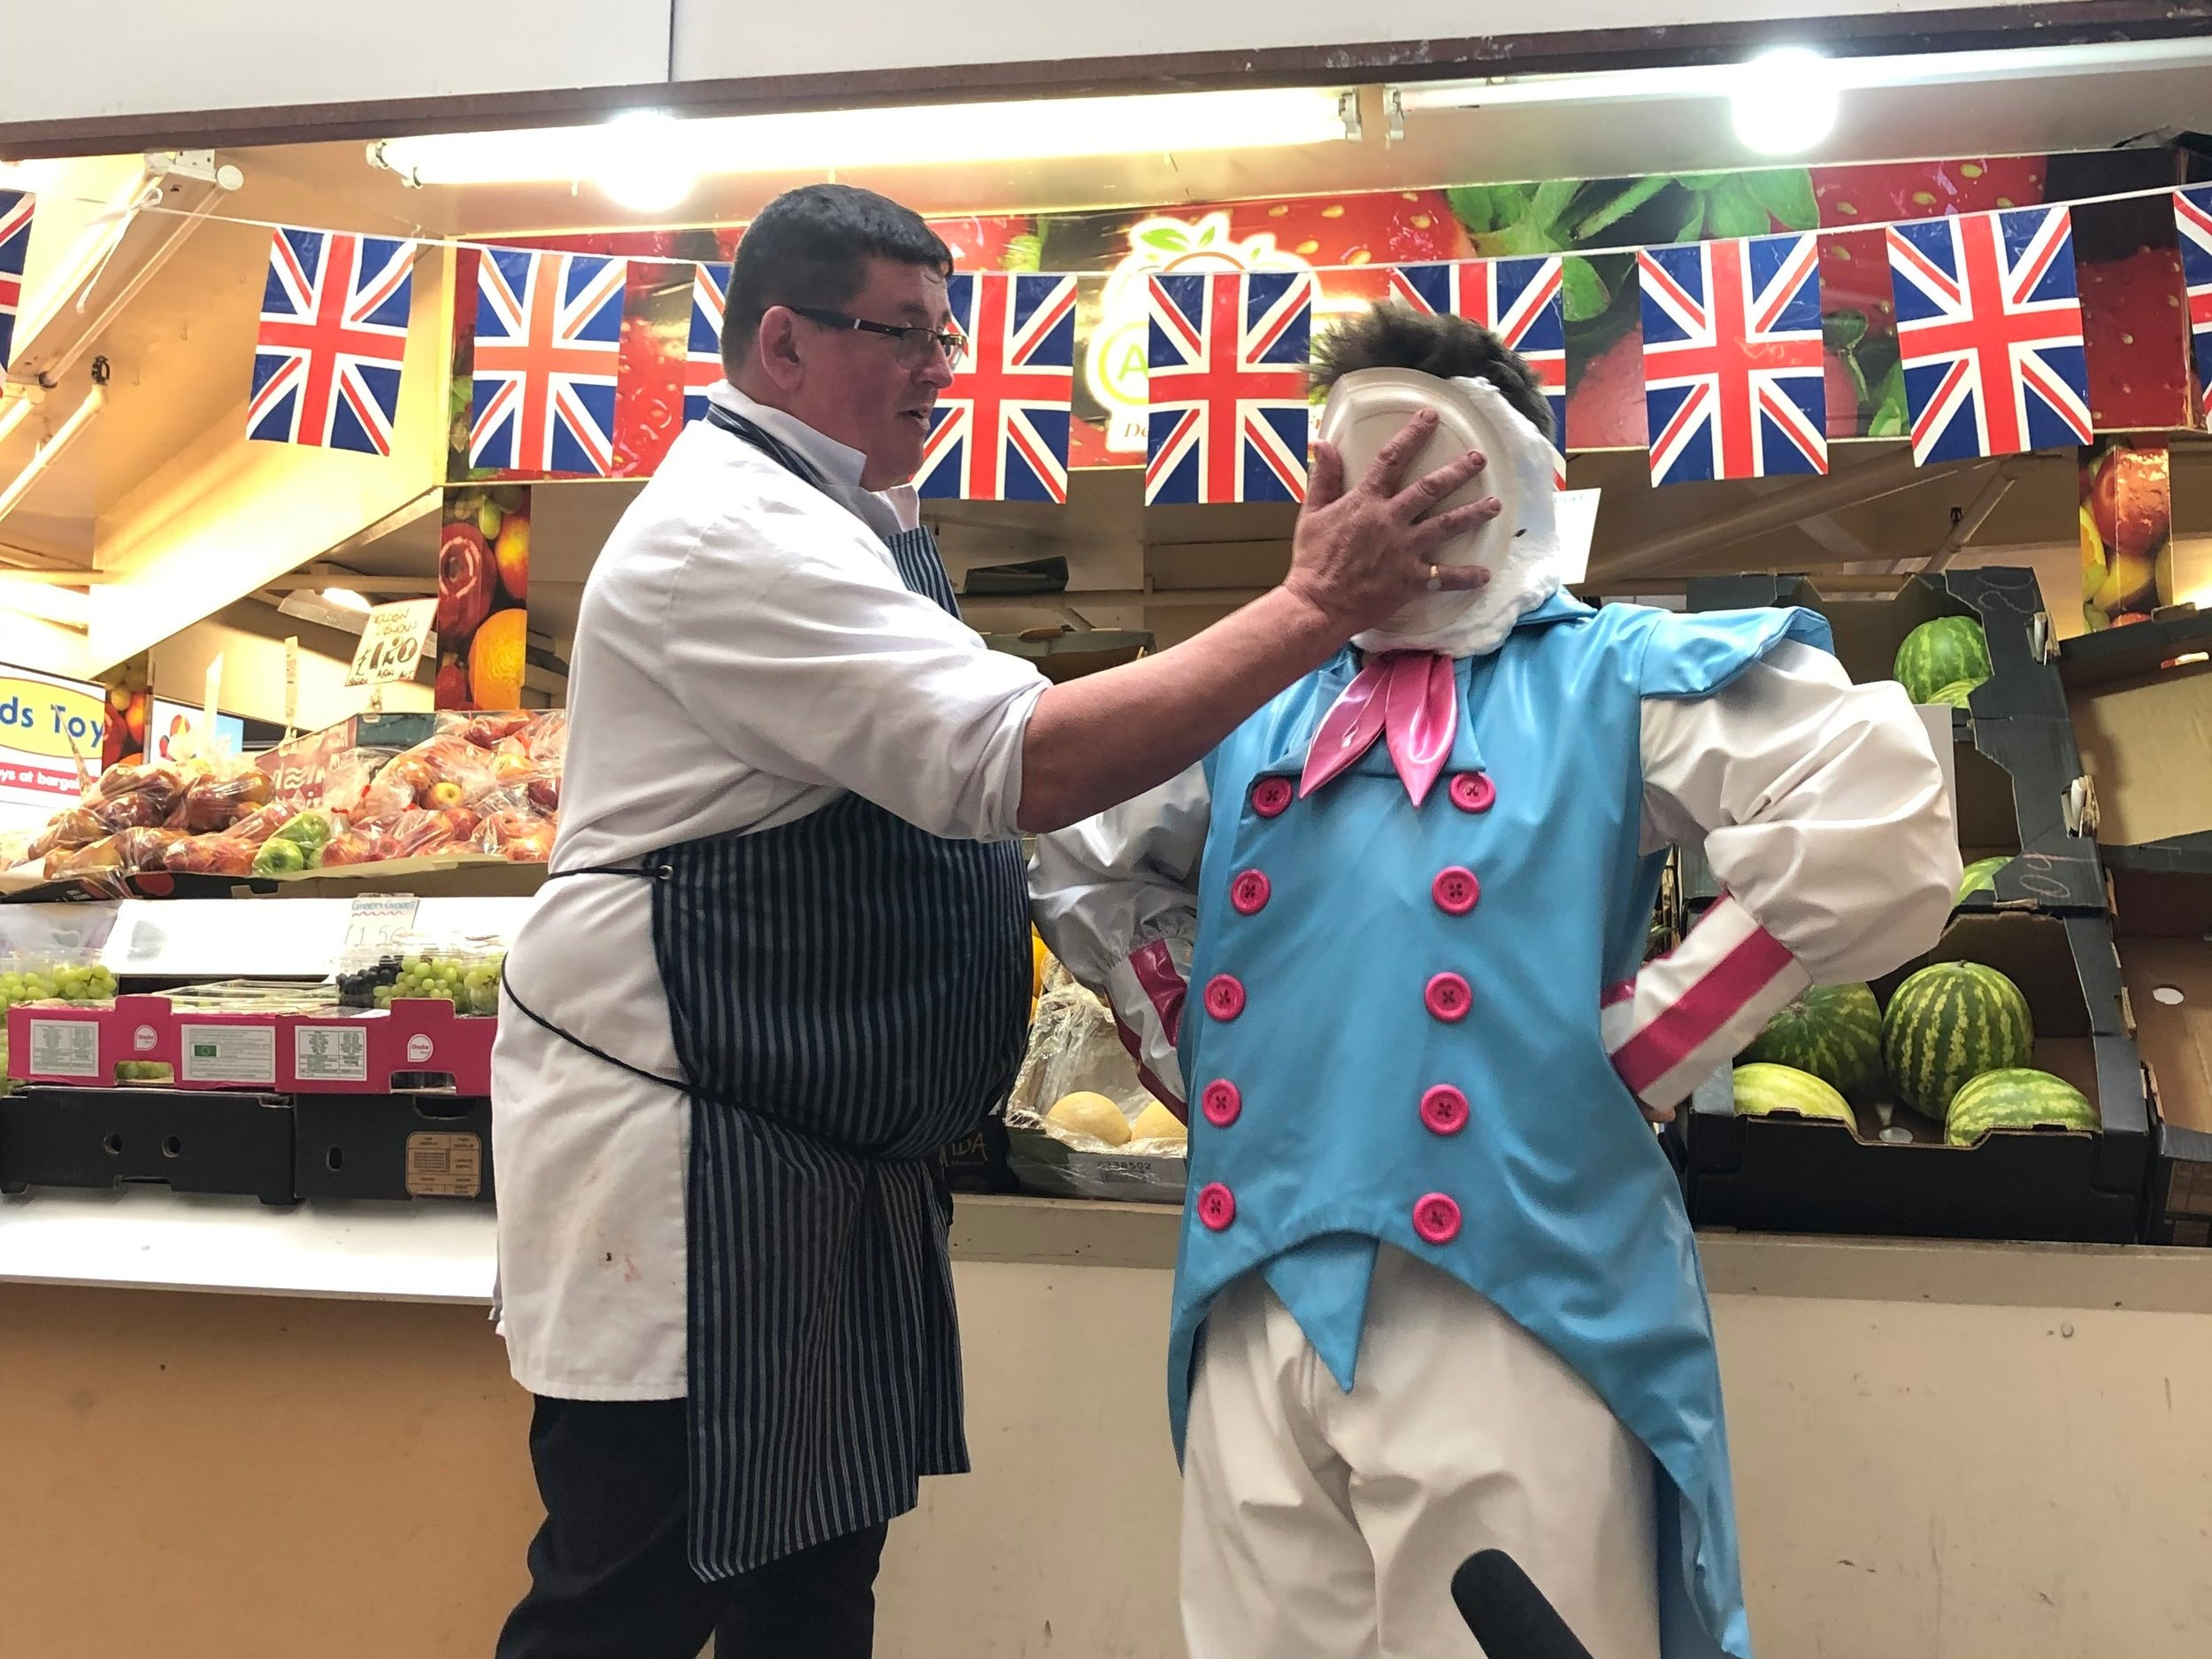 …. and another pie in the face outslde Woresman's Greengrocers, courtesy of Mick from Grosvenors butchers.